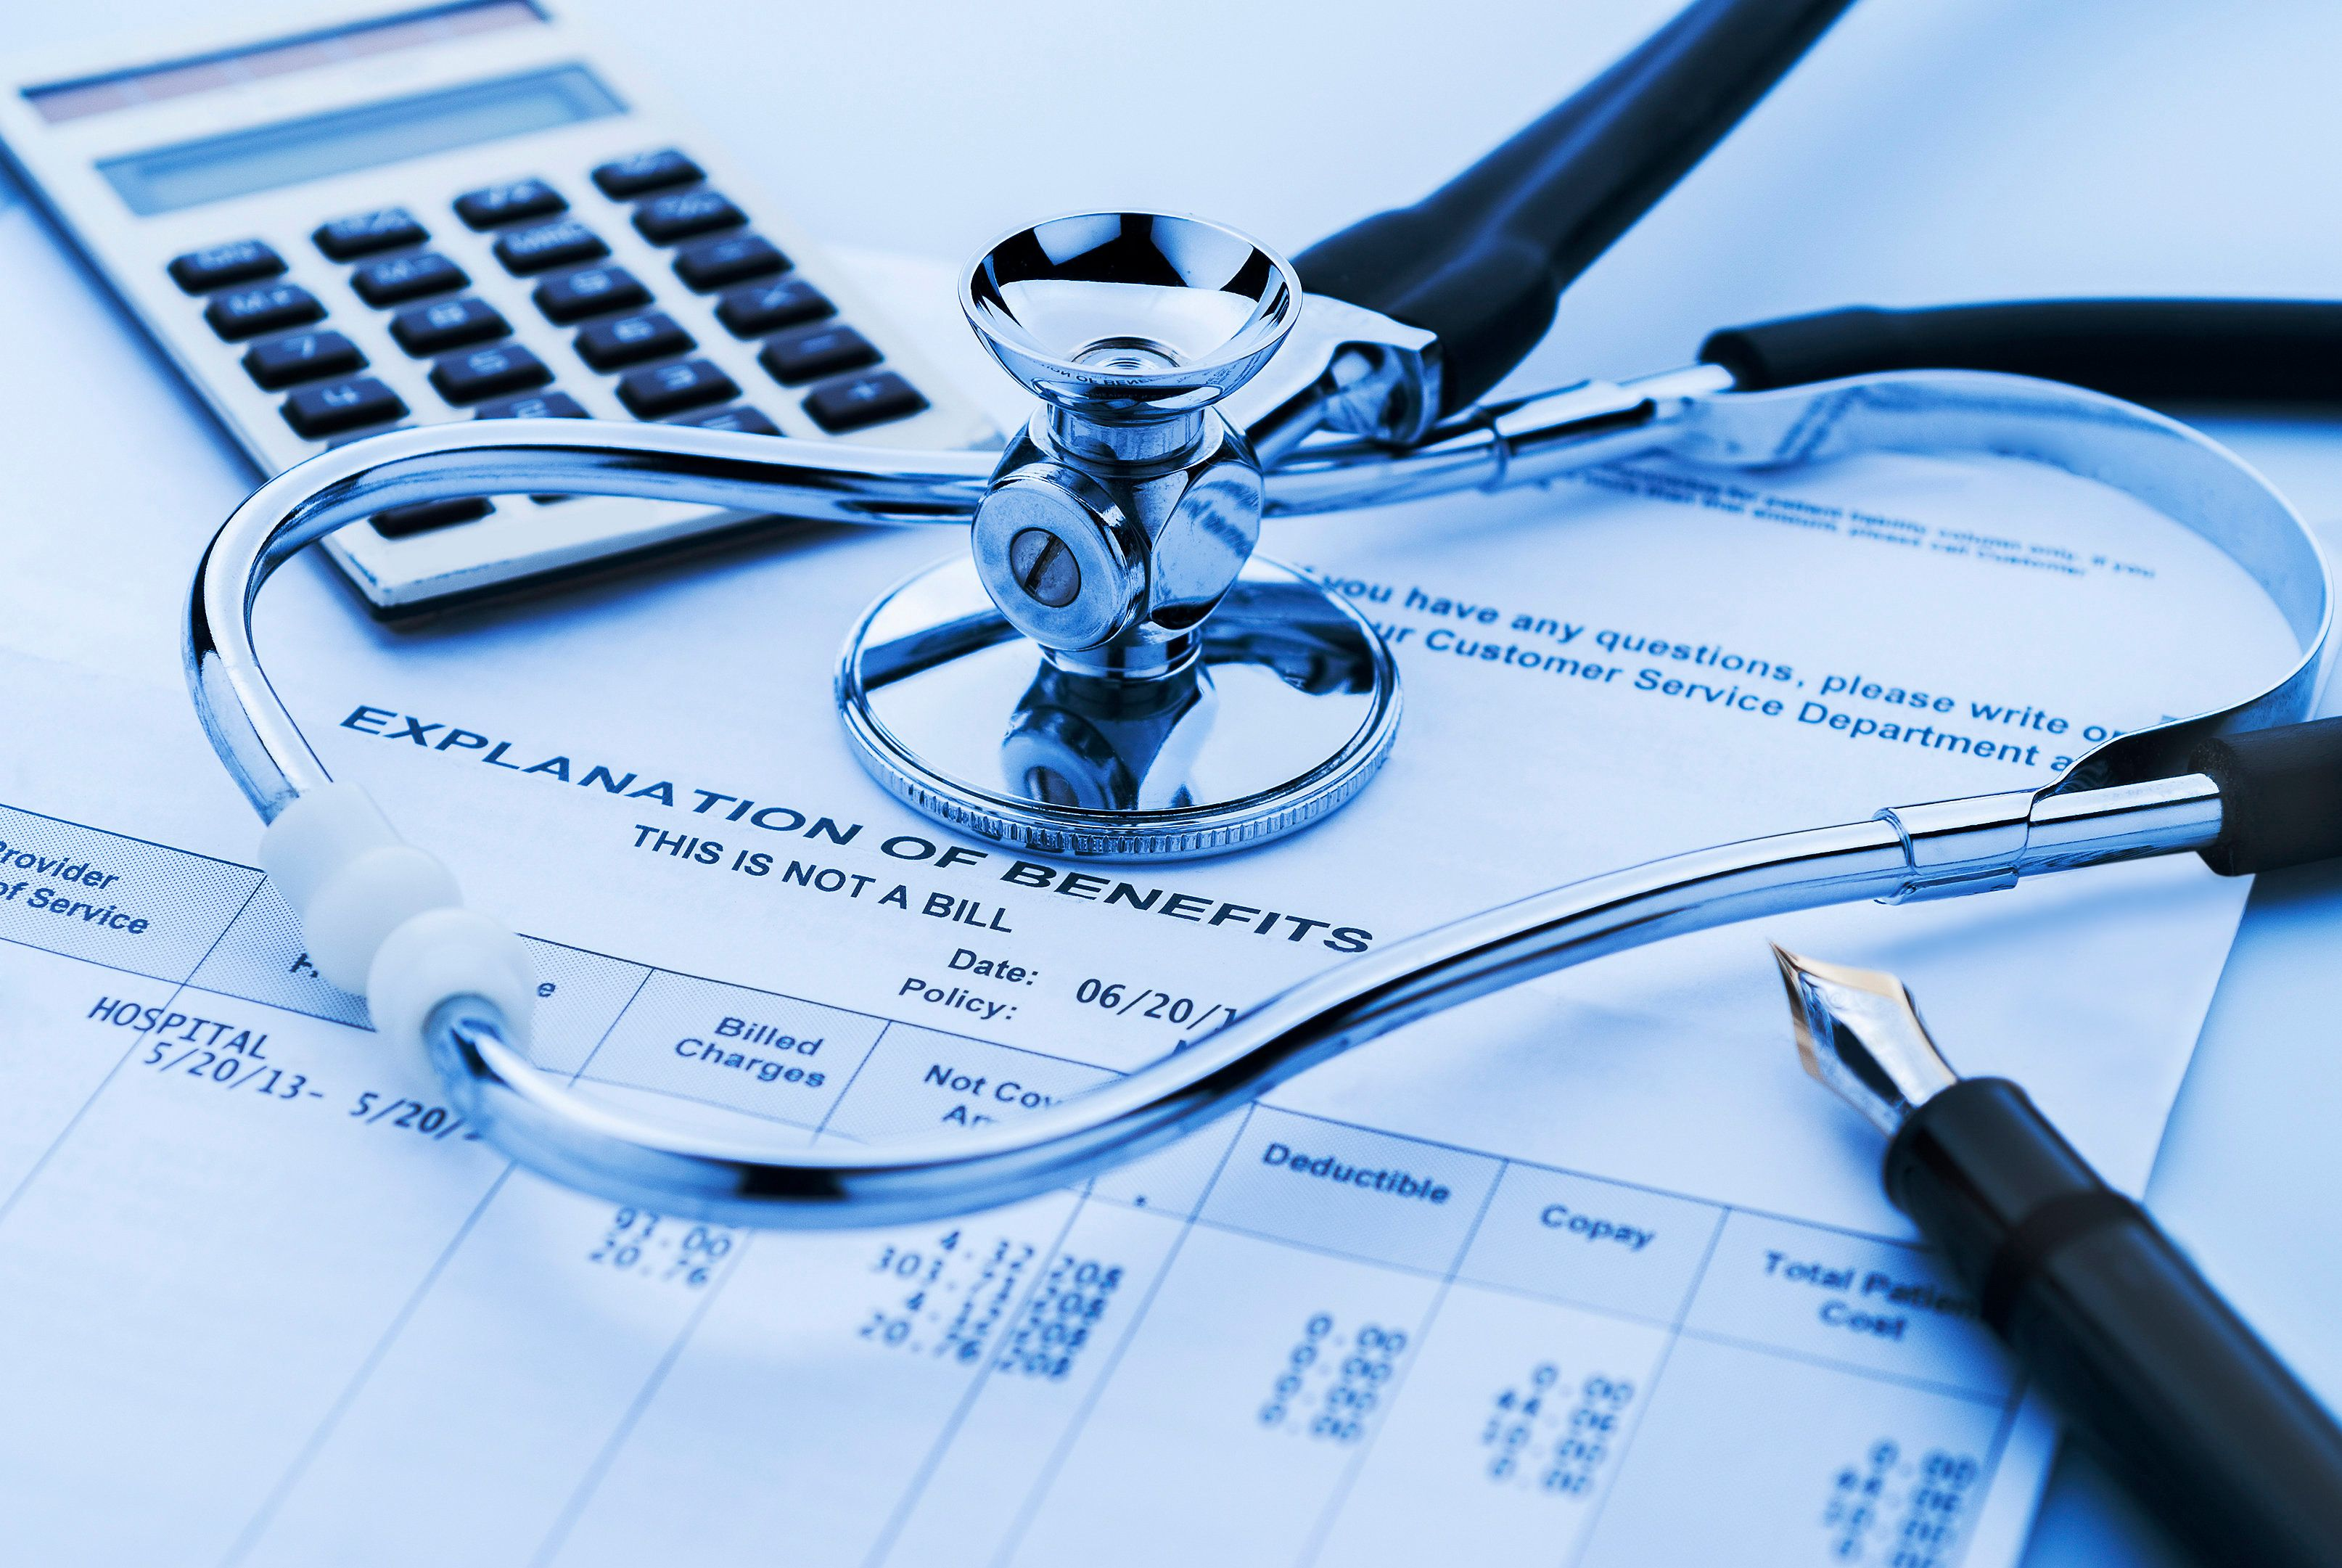 Rising medical health care cost in the United States and Canada